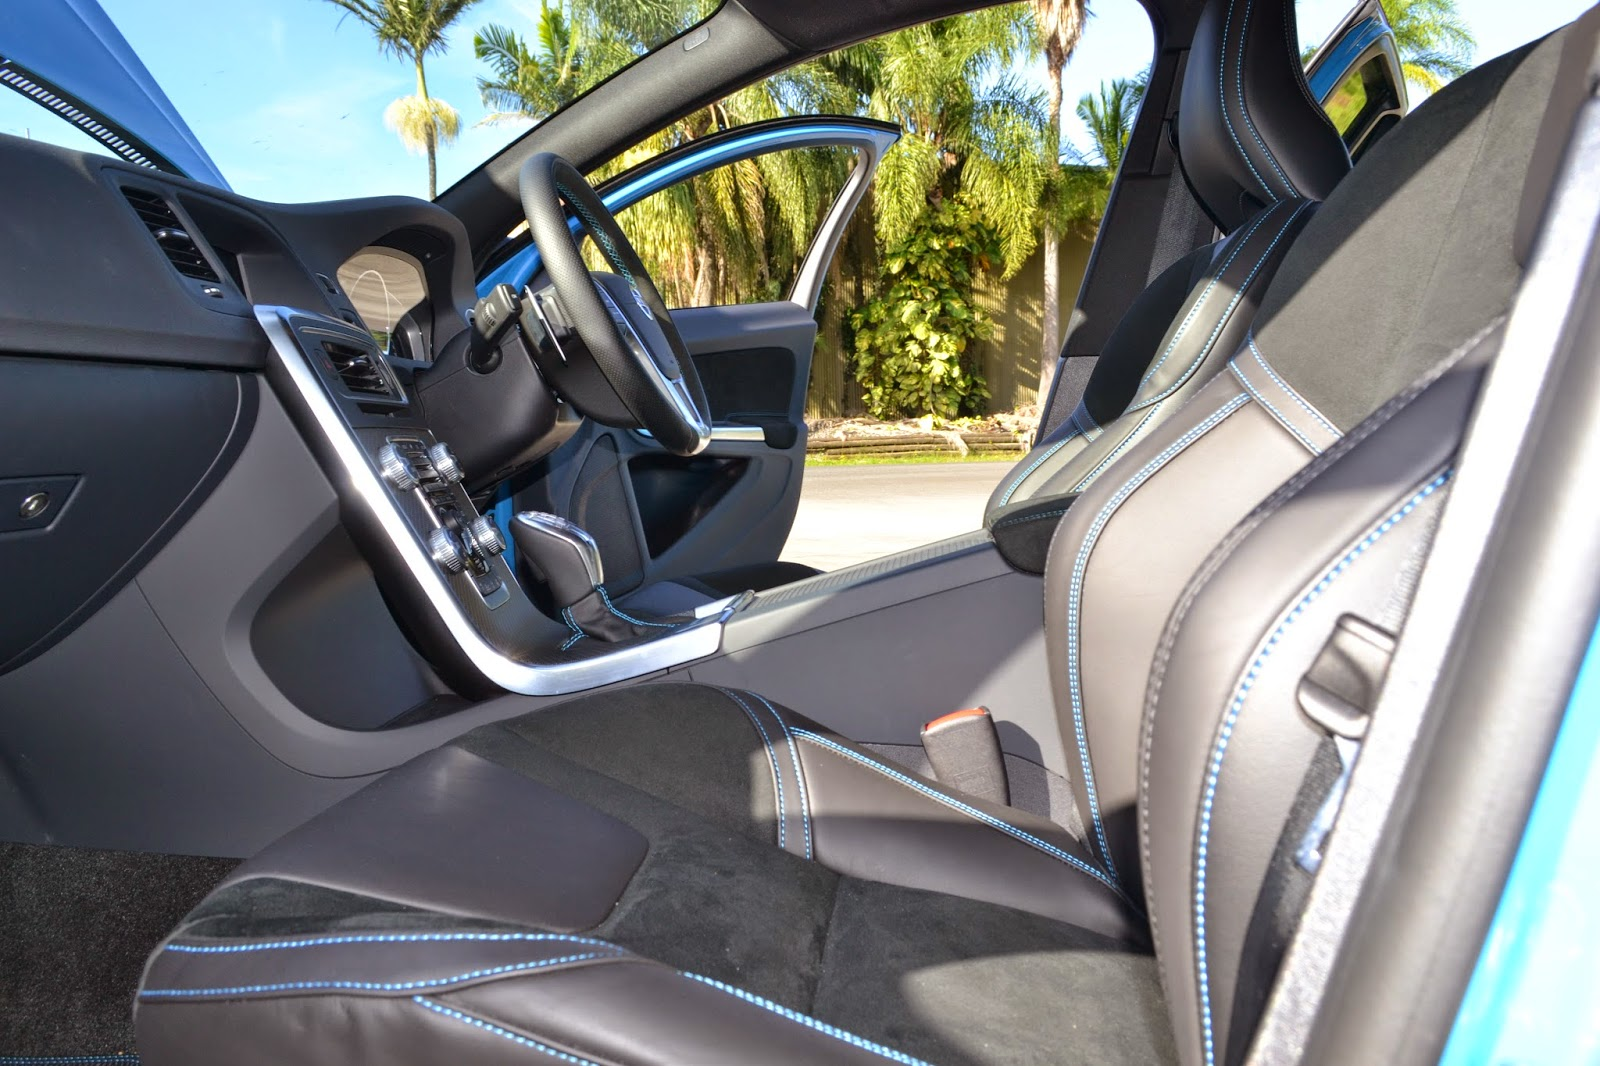 Sports seats are sublime and hold you in well